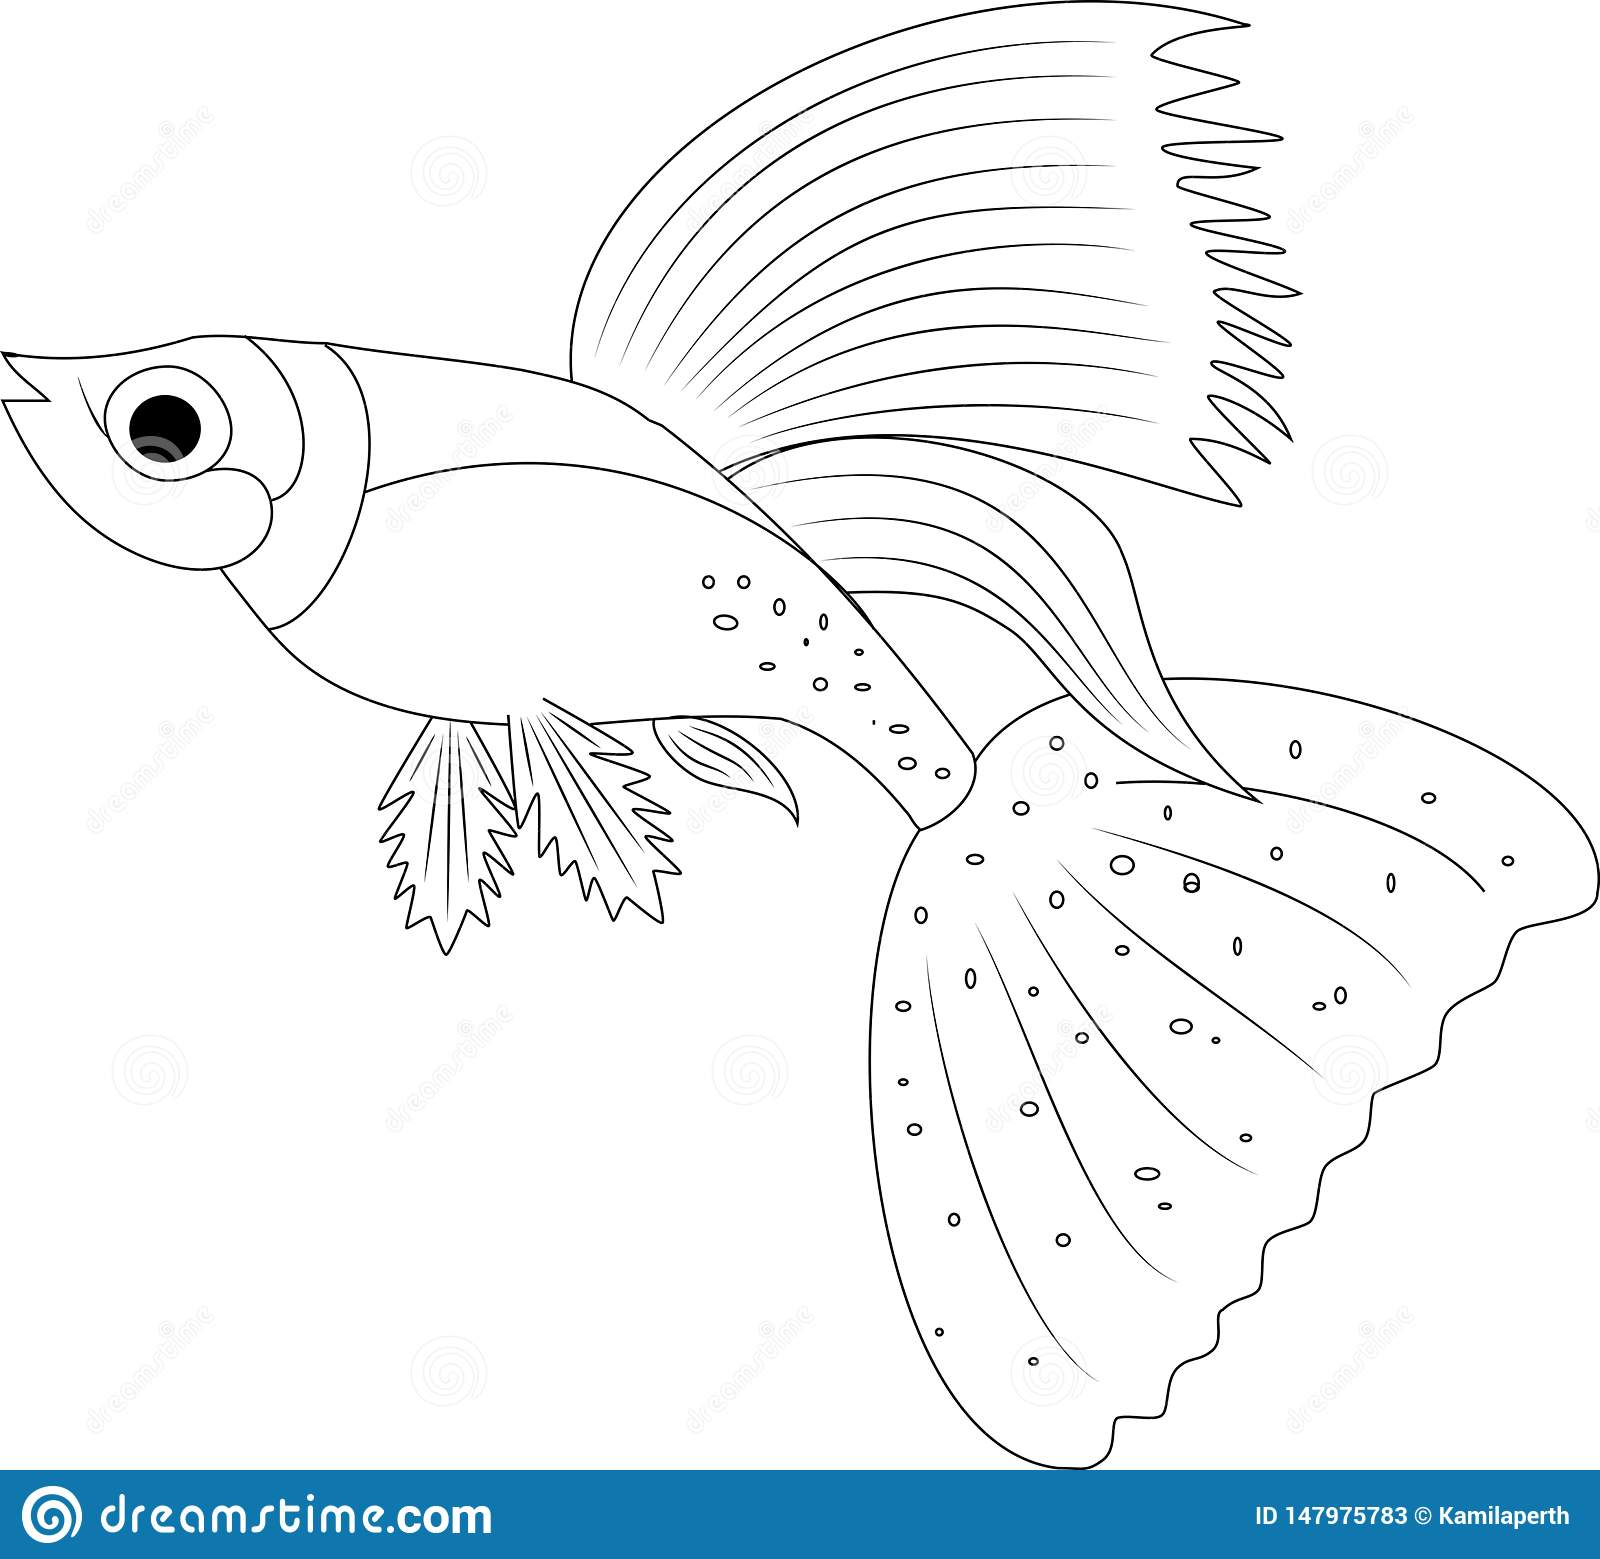 Fish Coloring Pages Printable Unique Rainbow Fish Coloring Pages ...   1559x1600